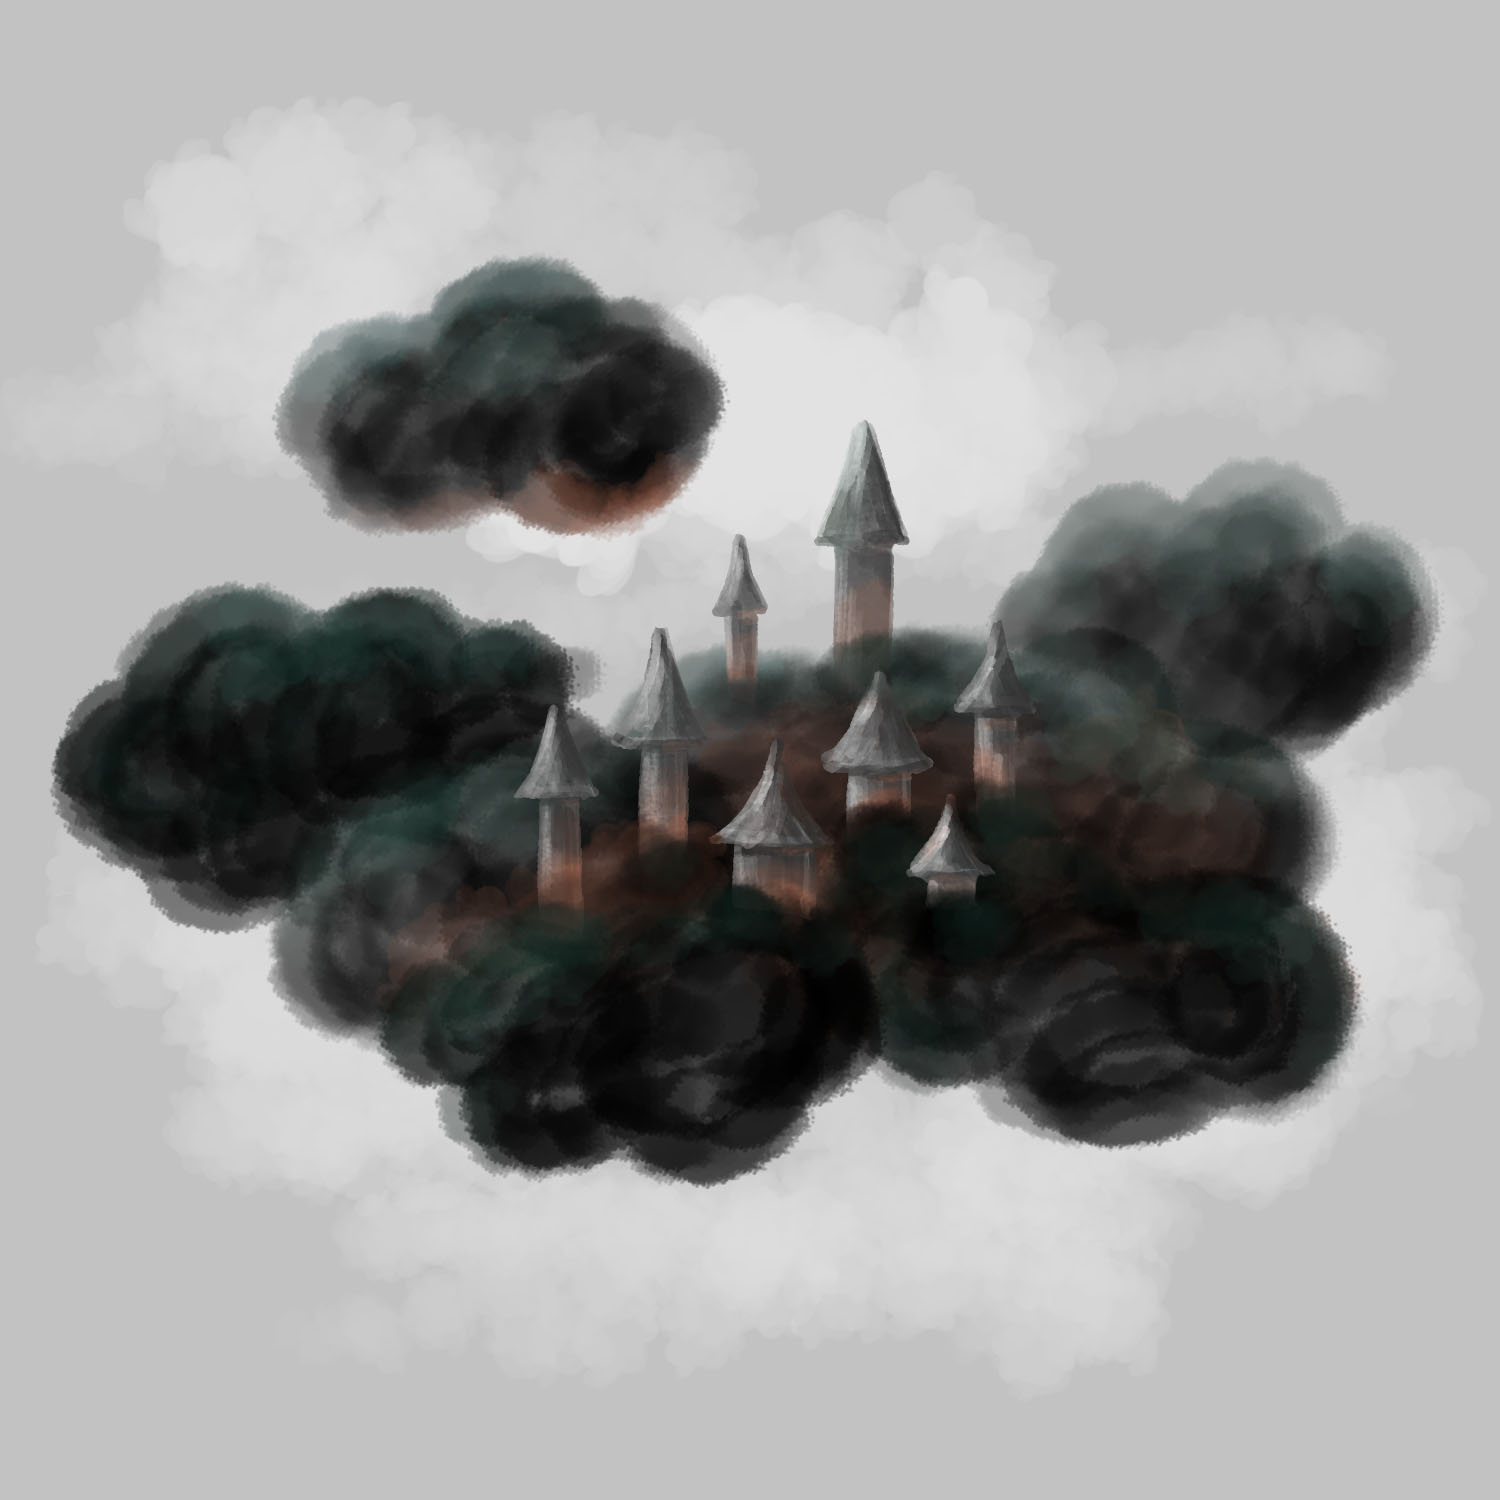 illustratie-castleintheclouds